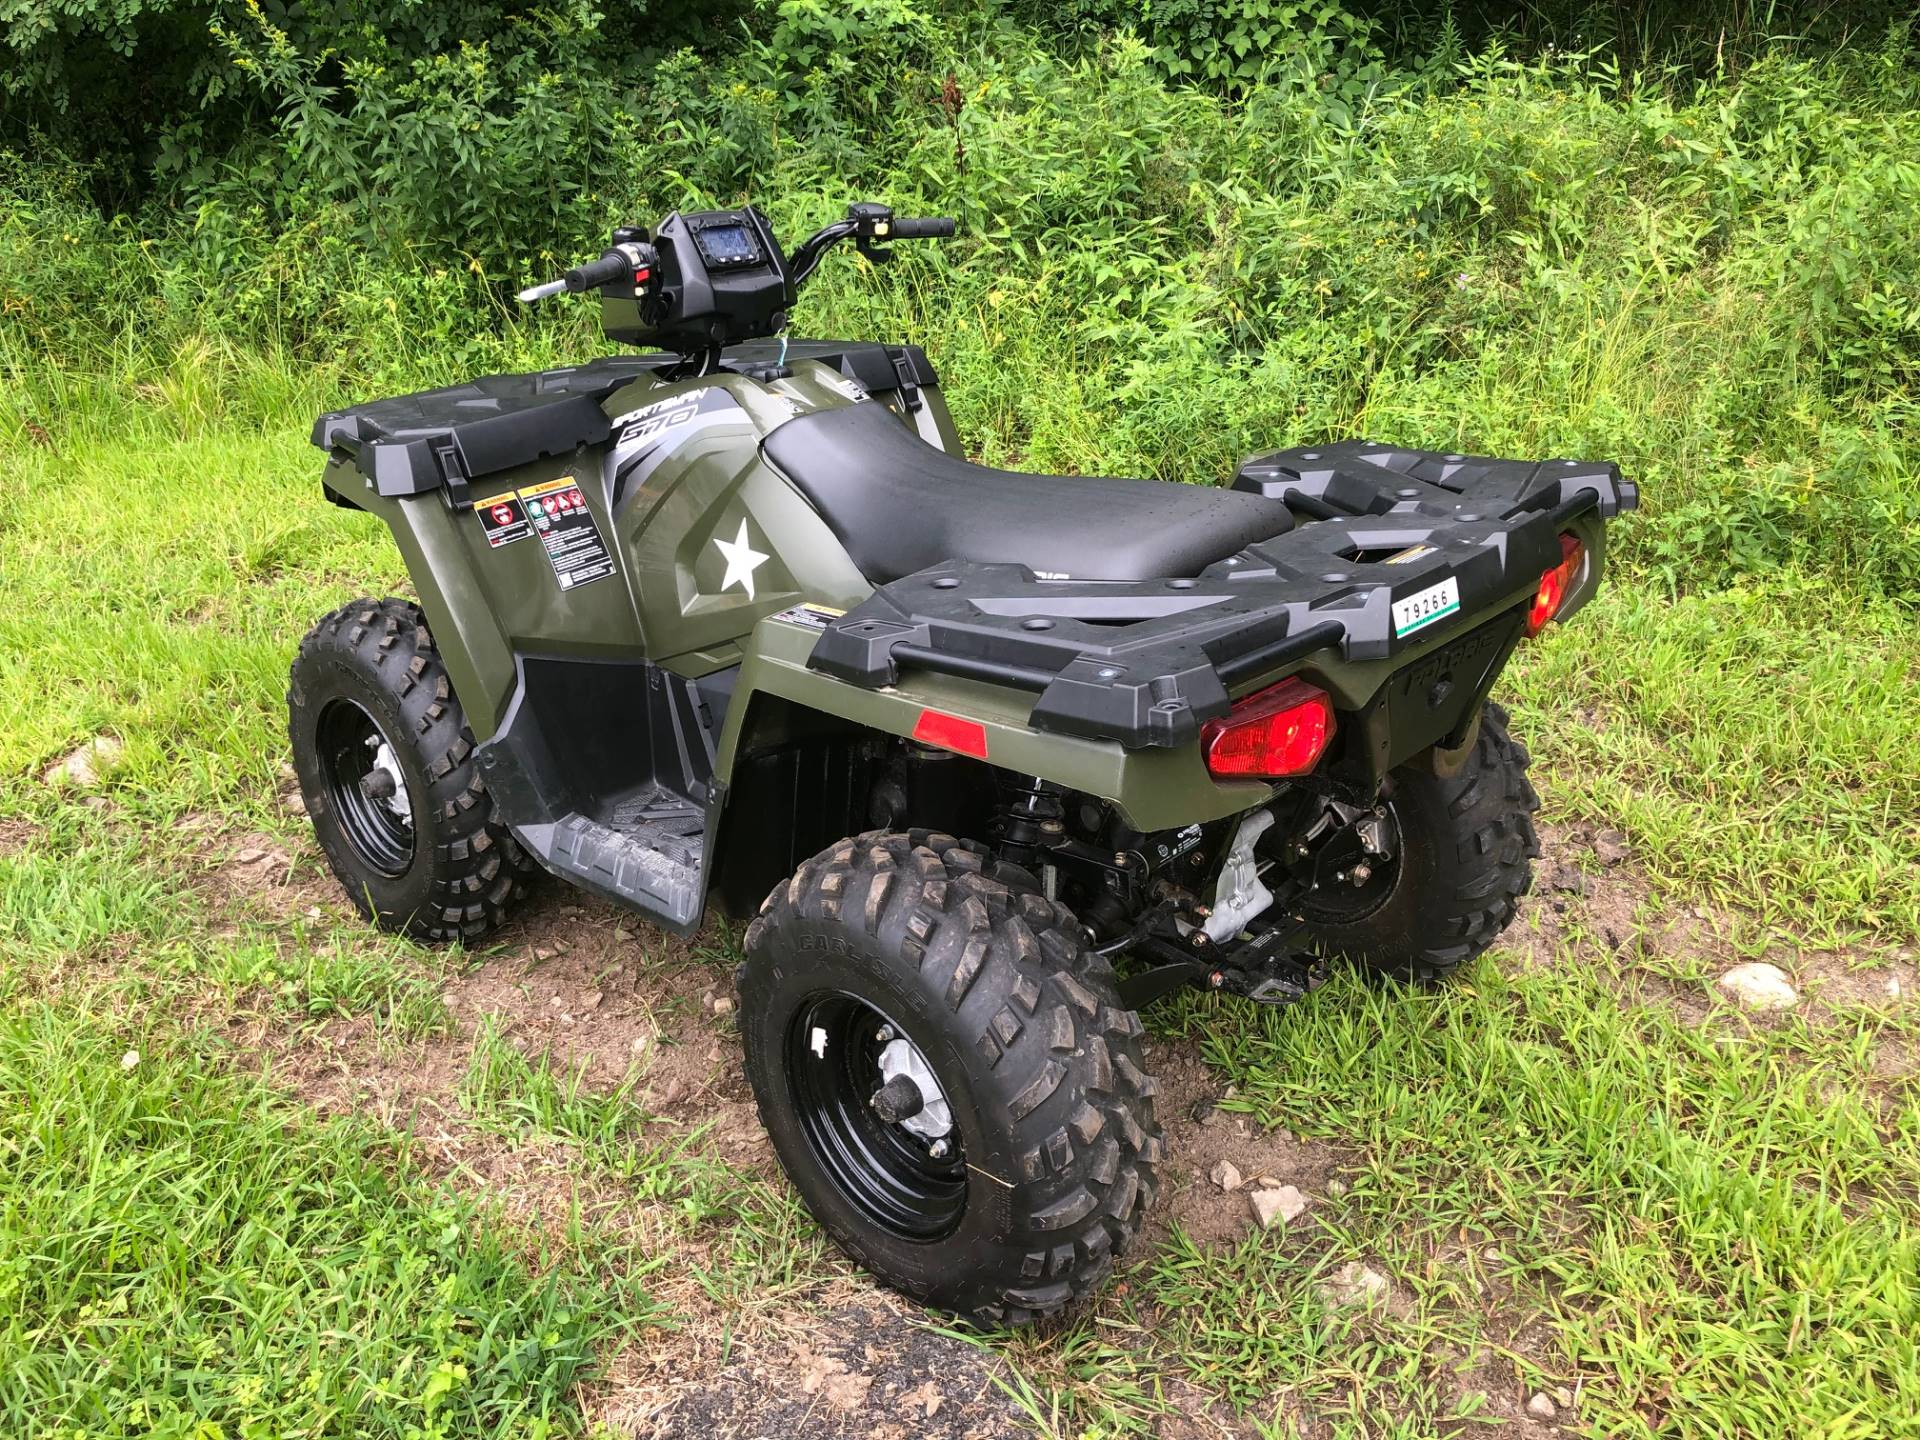 2018 Polaris Sportsman 570 in Milford, New Hampshire - Photo 4